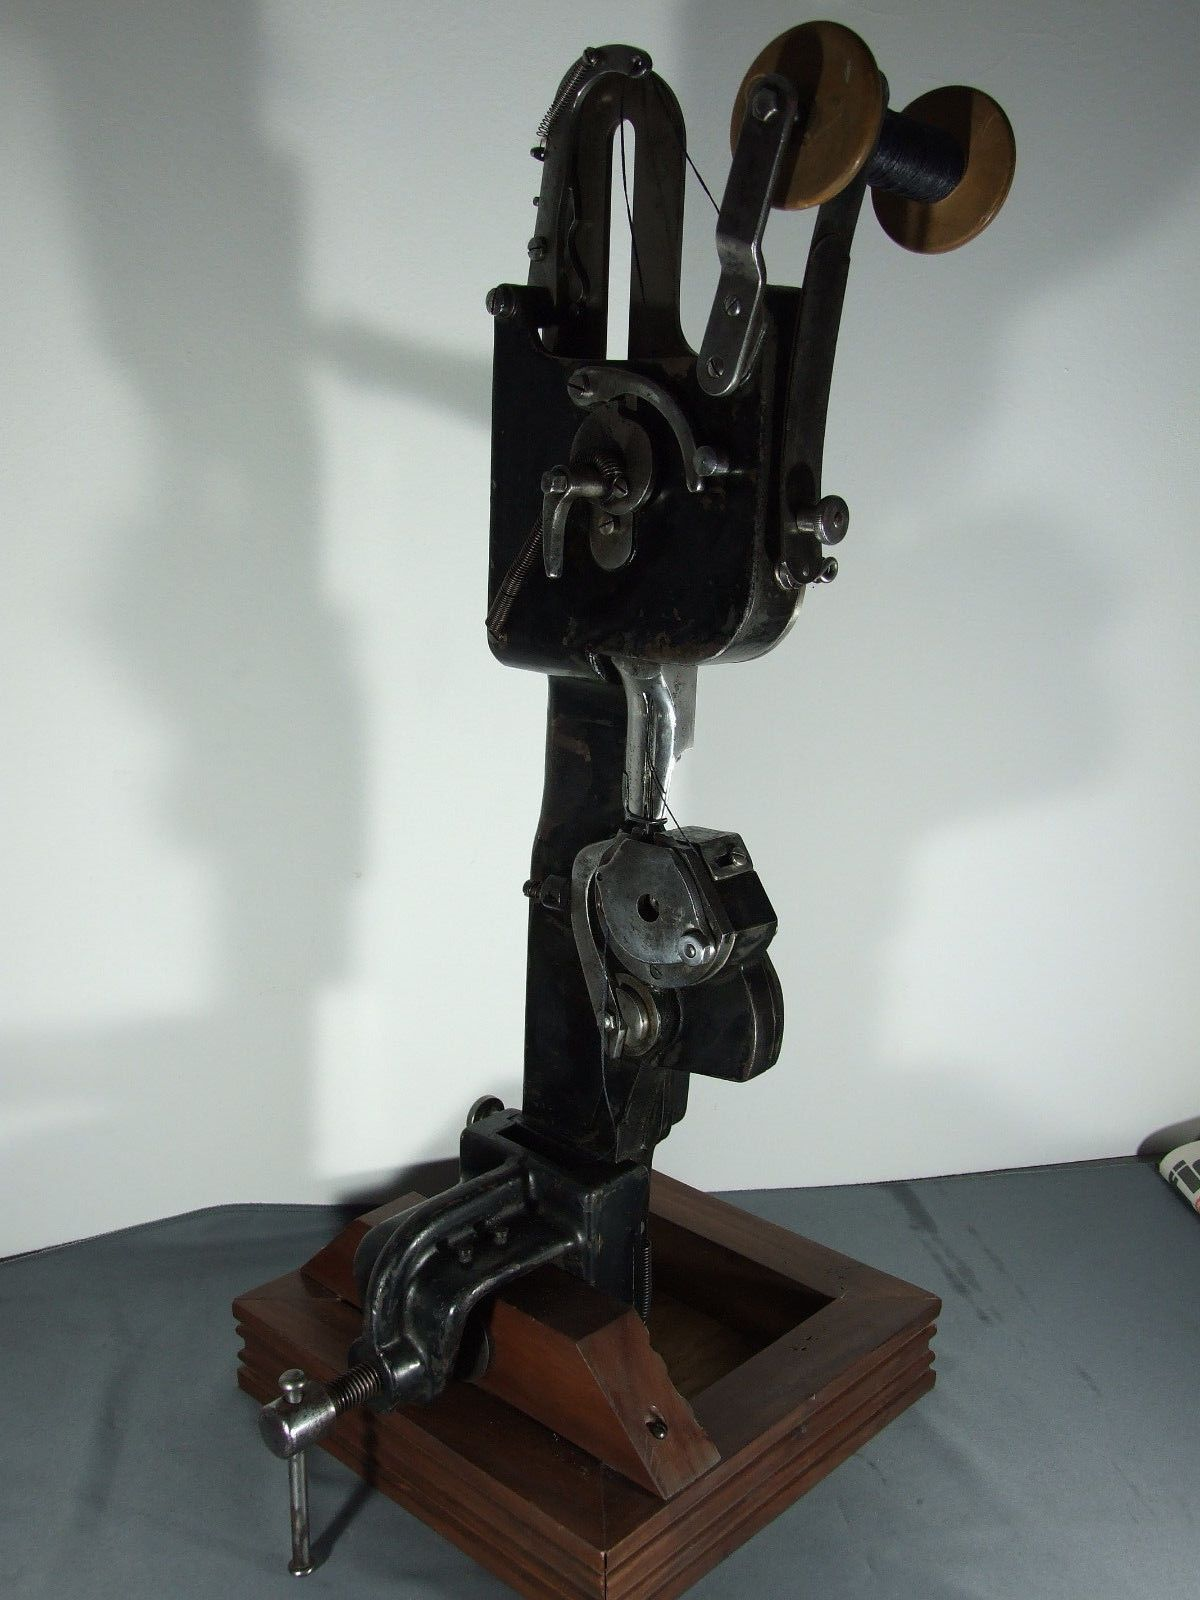 GRITZNER PATENT - ANTIQUE LEATHER SEWING MACHINE - 19th ...